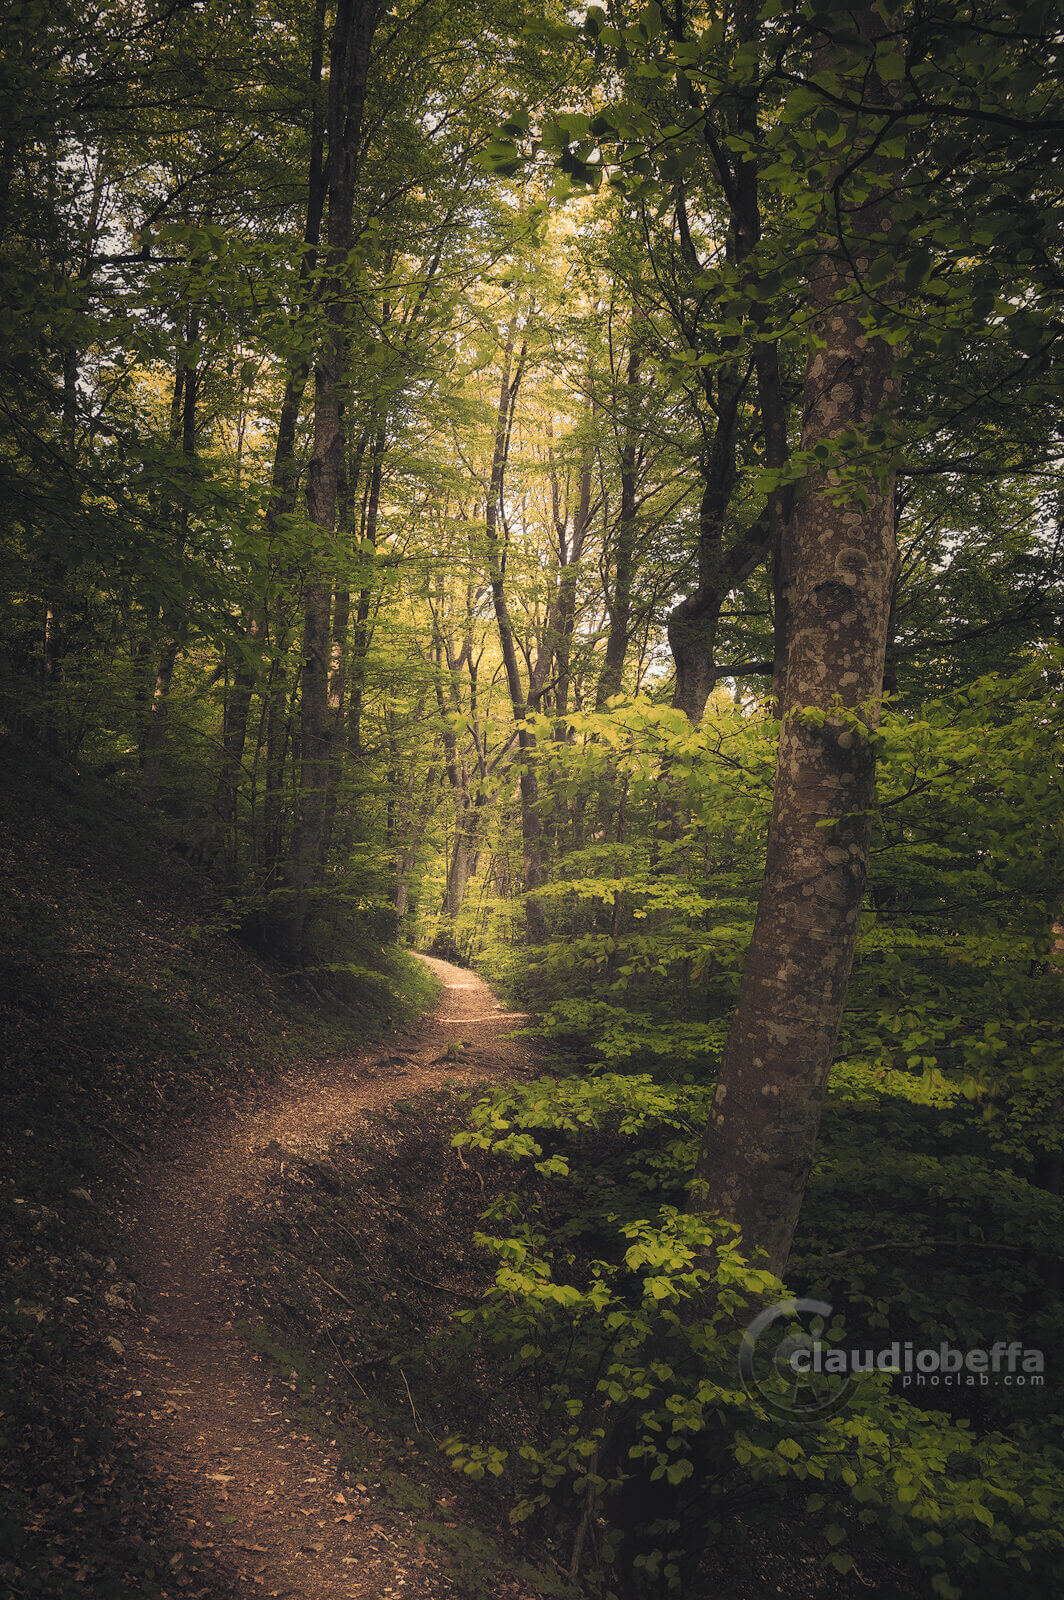 Path, Forest, Woods, Mount Cucco, Umbria, Italy, Nature, Trees, path into the beechwood, beechwood